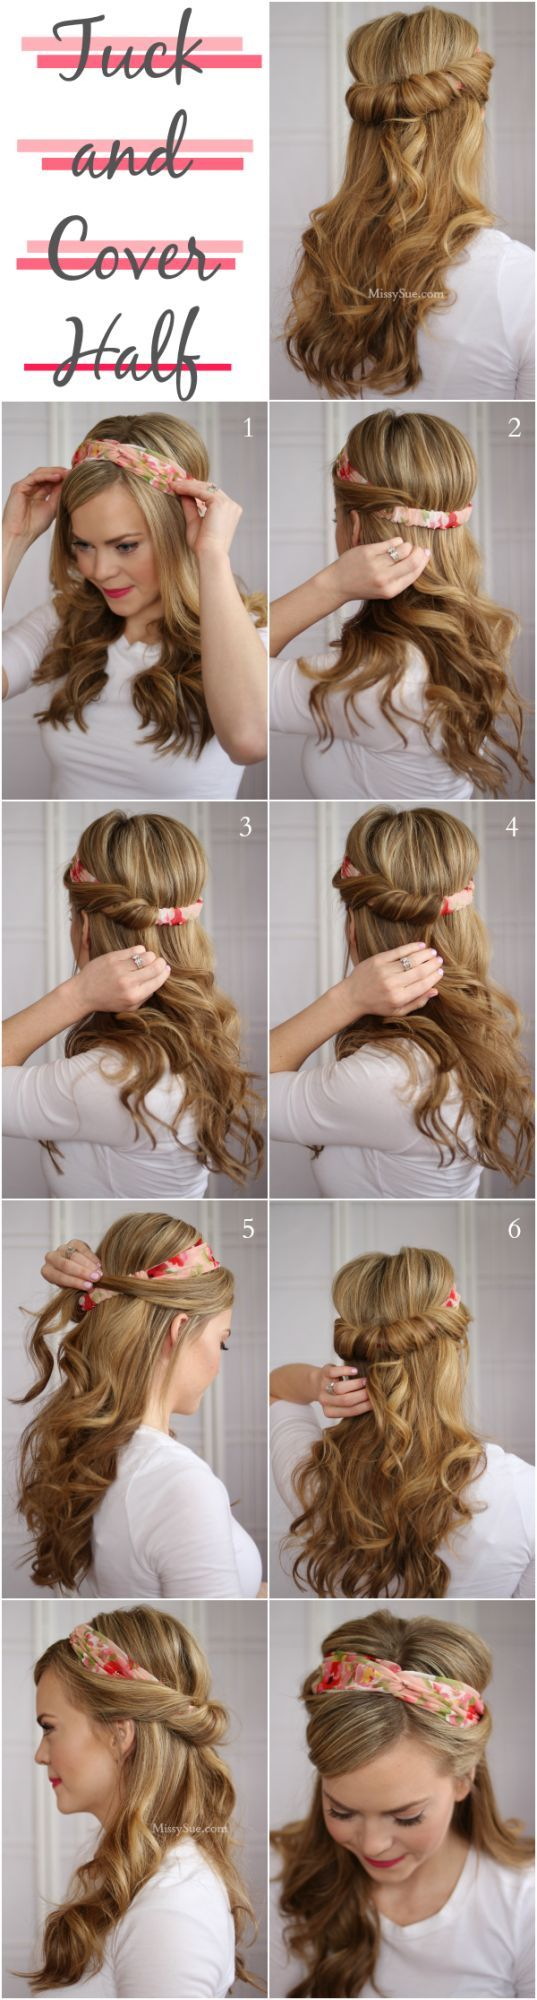 Art On Sun: 18 Cute #Hairstyles that Can Be Done in a Few Minutes #VintageHair  #Spring #vintagehair